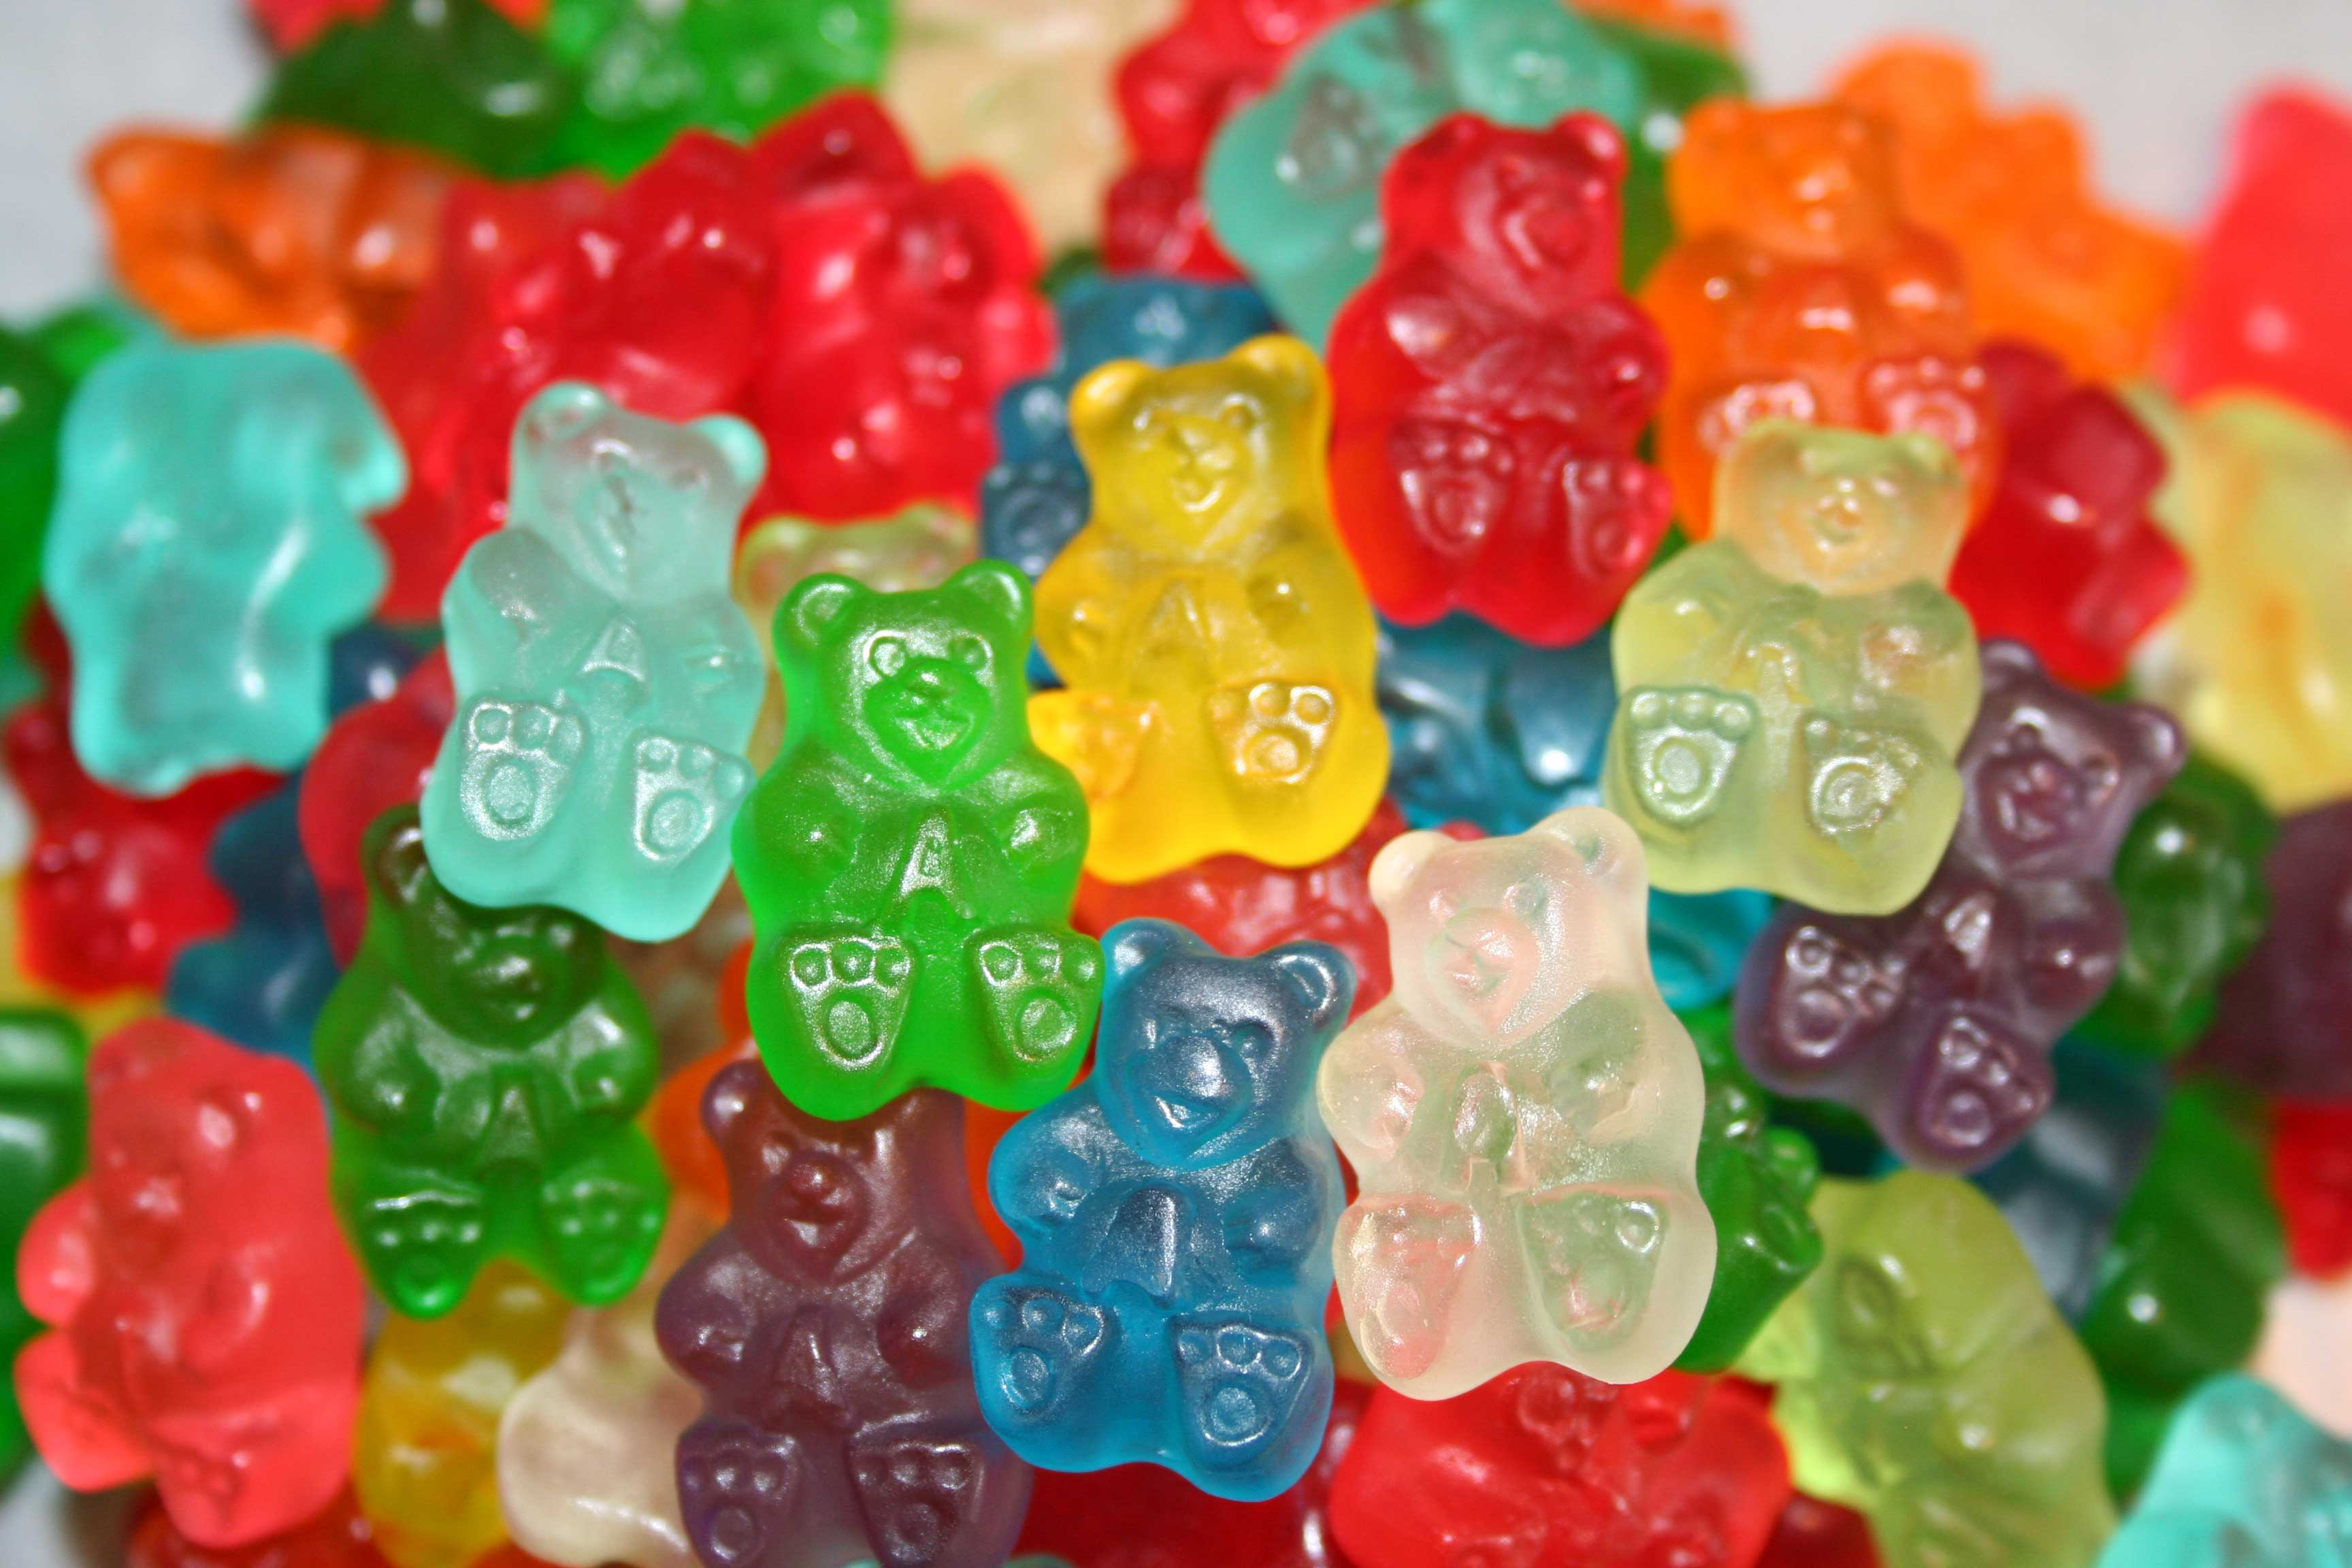 """biggy gummy-<strong>bear<\/strong>"""" style=""""max-width:400px;float:left;padding:10px 10px 10px 0px;border:0px;"""">2 Then not so along ago we seen the figures for ourselves where tens of thousands of of people died in Iraq since the US-led invasion of March 2003. It remains unclear just how many Iraqi lives have been lost in total. More than 4,300 coalition soldiers were killed – 4,000 of these experts Americans. Health ministry approximates in November 2006 varied from 100,000 to 150,000 dead. This contrasts by using a survey of Iraqi households in the Lancet, which suggested the staggering regarding 655,000 Iraqis killed by July 2007. The entire total shows two.2m people dead.</p> </p> <p>3) Make thought process – Almost all of us are held back by a pot addiction because we know it factor that have confidence in and therefore cannot live without. How often anyone told yourself that you only eager to do something if you smoke some cannabis to start with? Trust me when I believe that that you will not need marijuana or cannabis, and you can definitely live without one.</p> </p> <p>Answer certain questions as their intended purpose that enable you to stay targeted. Ask yourself the reason for withdrawal. Who/what helped you select quitting? Make sure answer these questions off your heart. The answers will allow you chart out a clear plan for that withdrawal.</p> </p> <p>Don Steinberg and Bruce Perlowin are heading along the company. The only thing they have done in seen an explosion is create the world's largest telecom network marketing company around the globe. I guess that's satisfactory right? They bring that experience plus a team of advisors and associates such as immunologists, formulators, Doctors, PhD's, marketing teams,  <a href="""